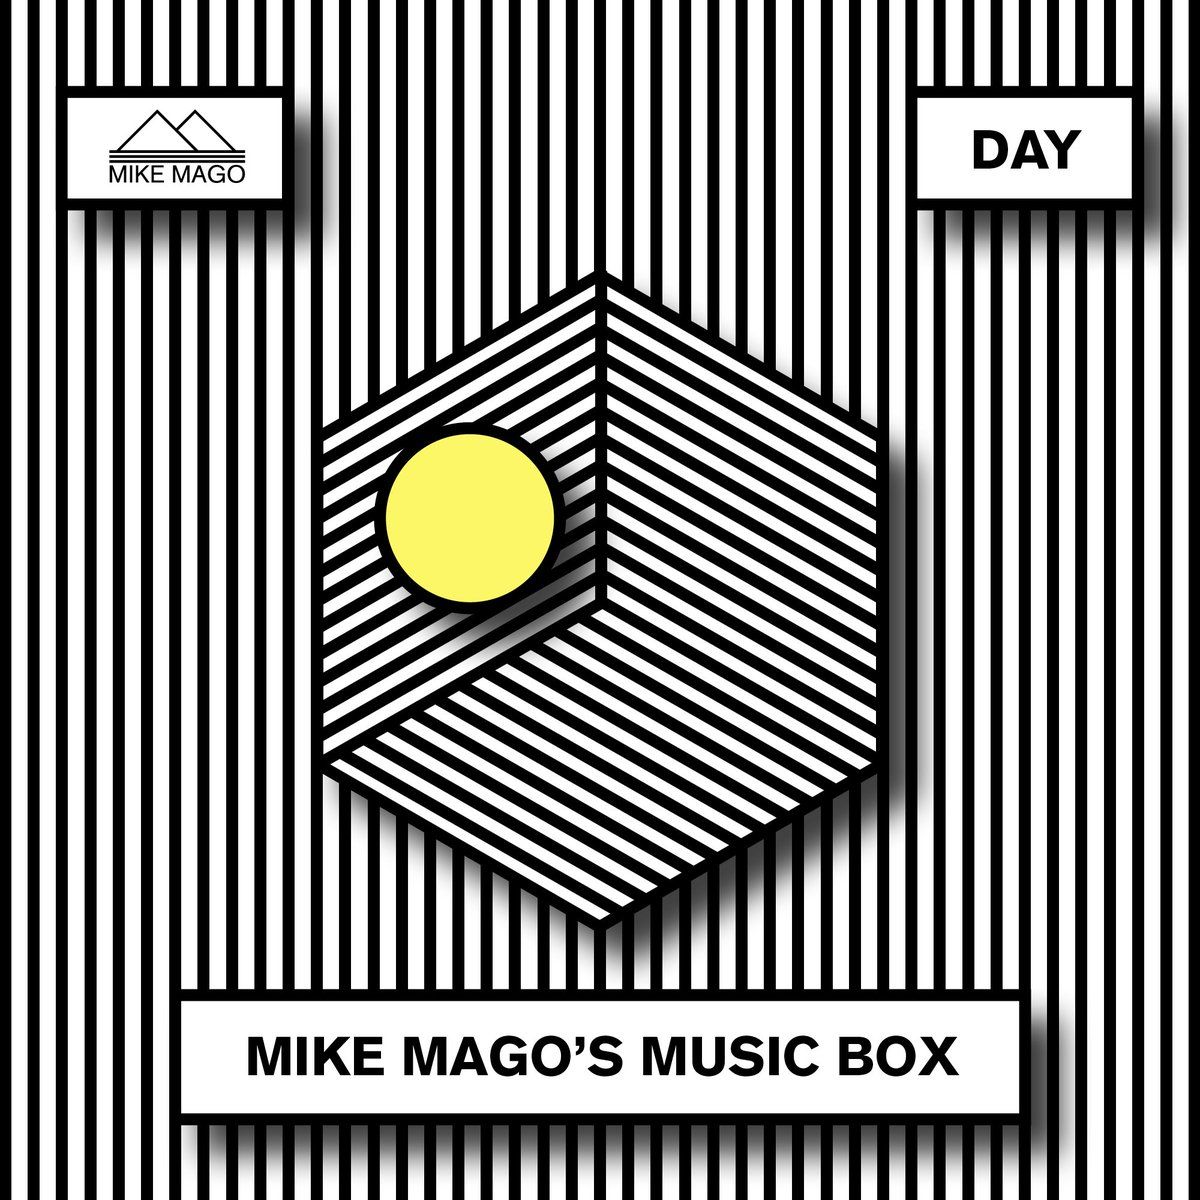 Fresh new tracks in my Music Box to make your day even better!